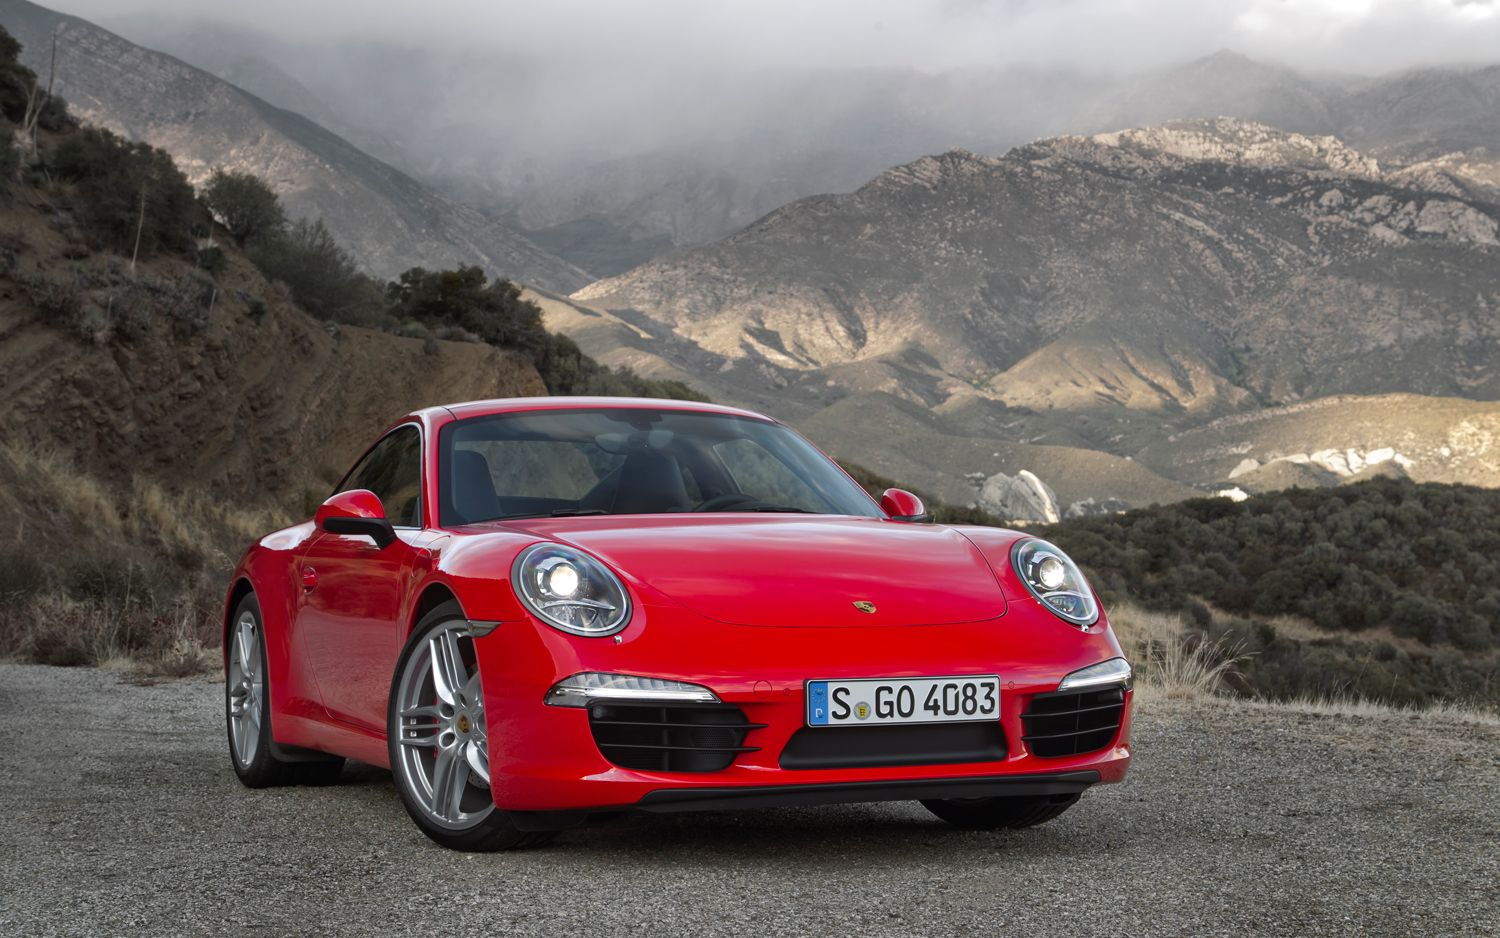 2012 Porsche 911 Carrera S Guards Red Front Three Quarters21